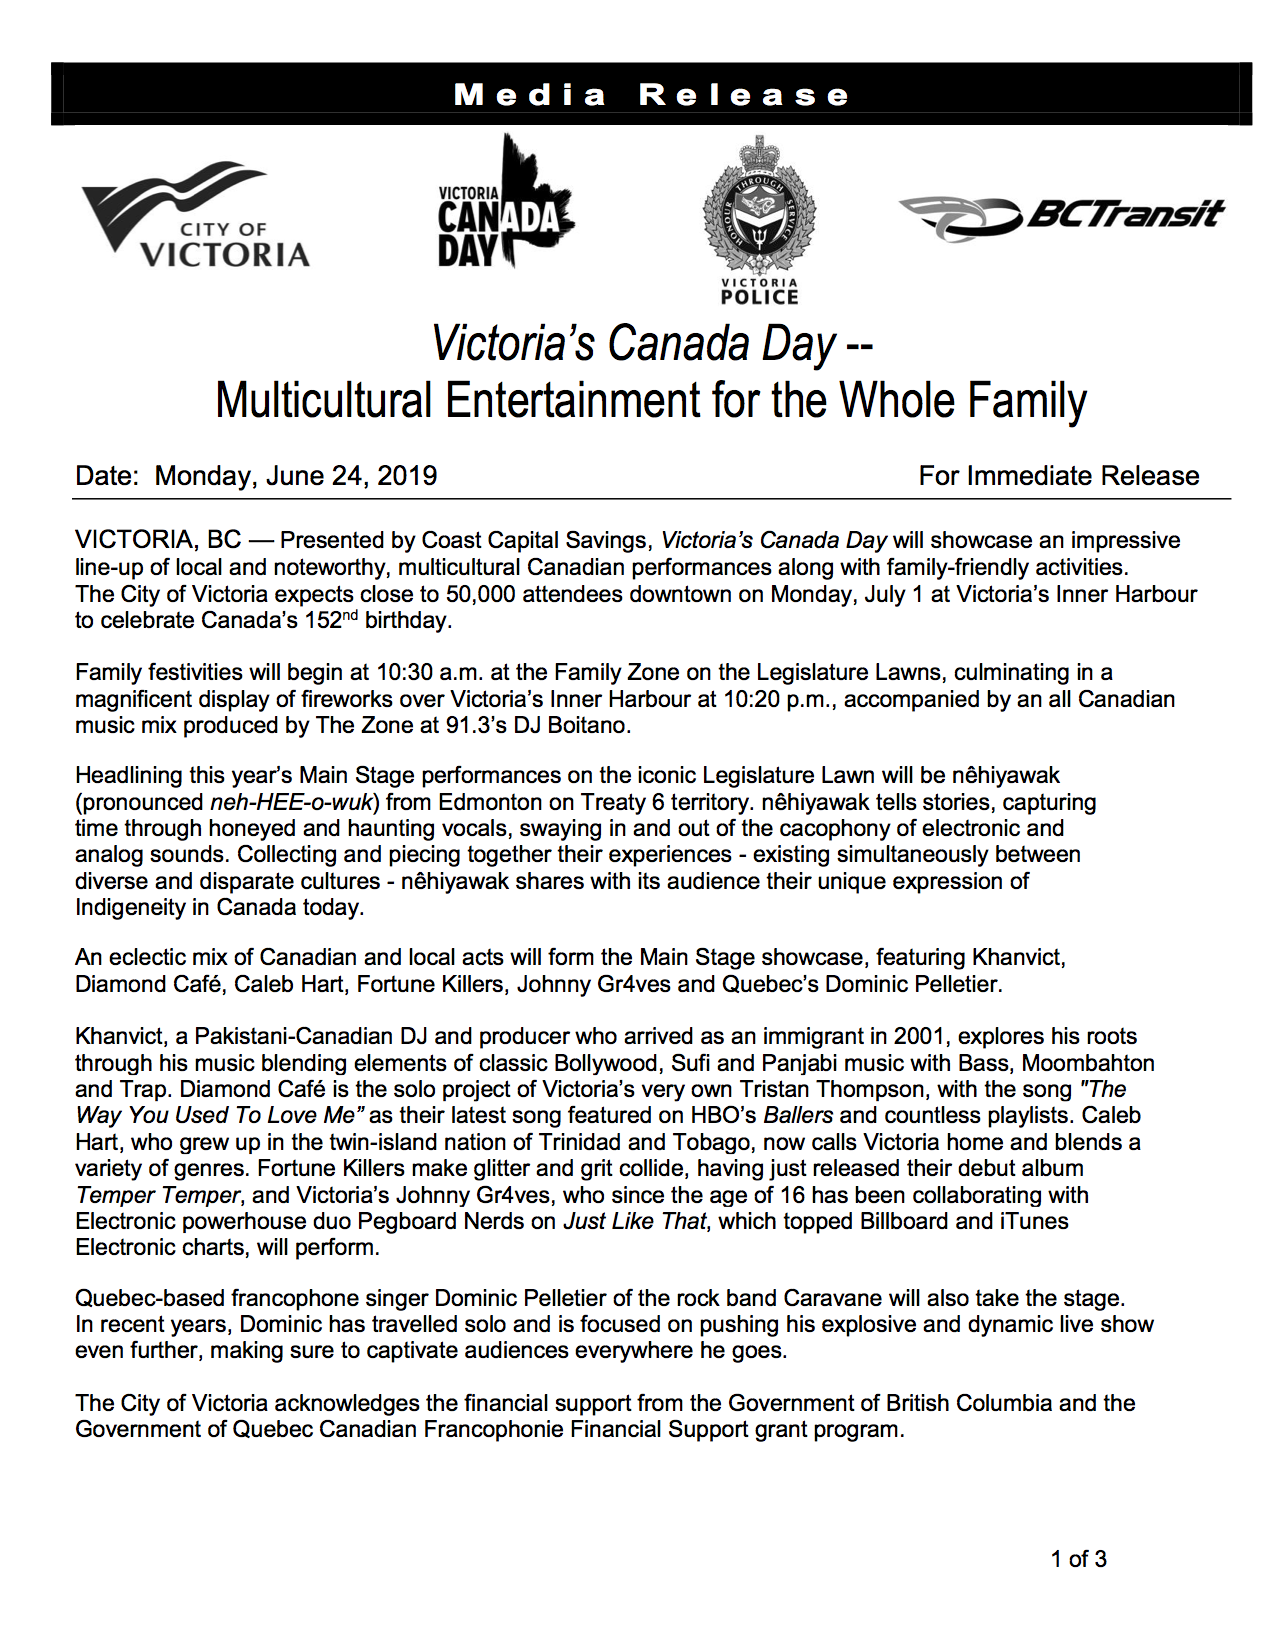 20190624_MR_Victoria's Canada Day Multicultural Entertainment for the Whole Family.png